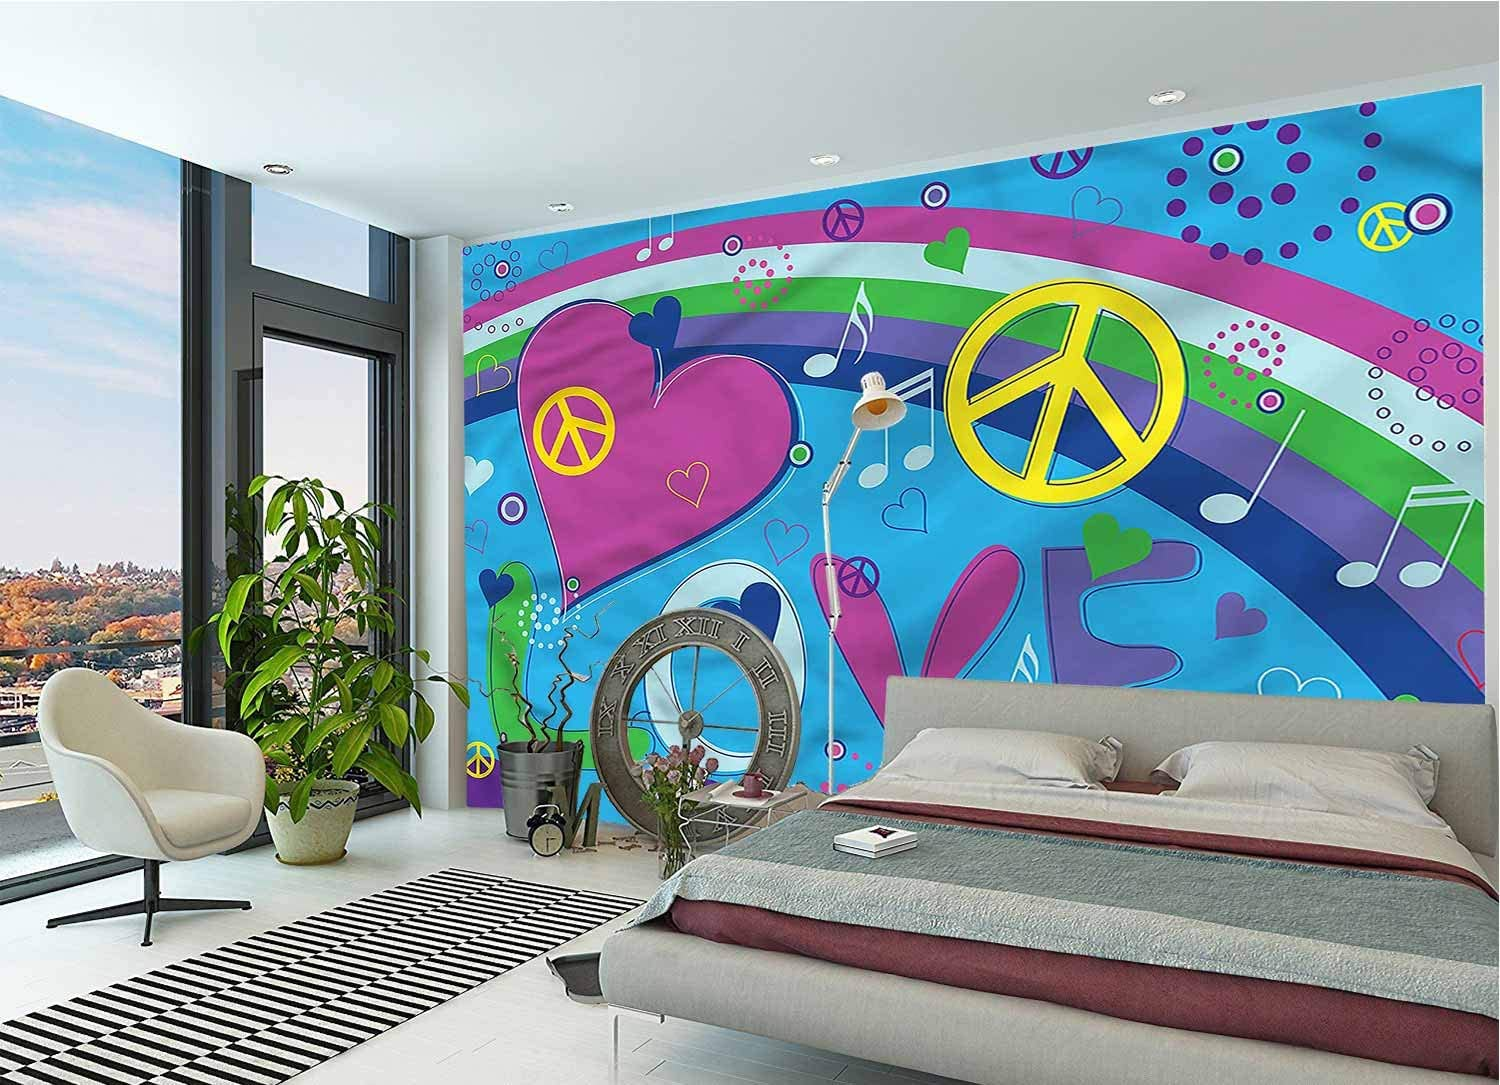 LCGGDB Groovy Wall Mural Decal,Love Heart Musical Notes Removable Large Wall Mural for Livingroom Bedroom Nursery School Family Wall Decals-144x100 Inch